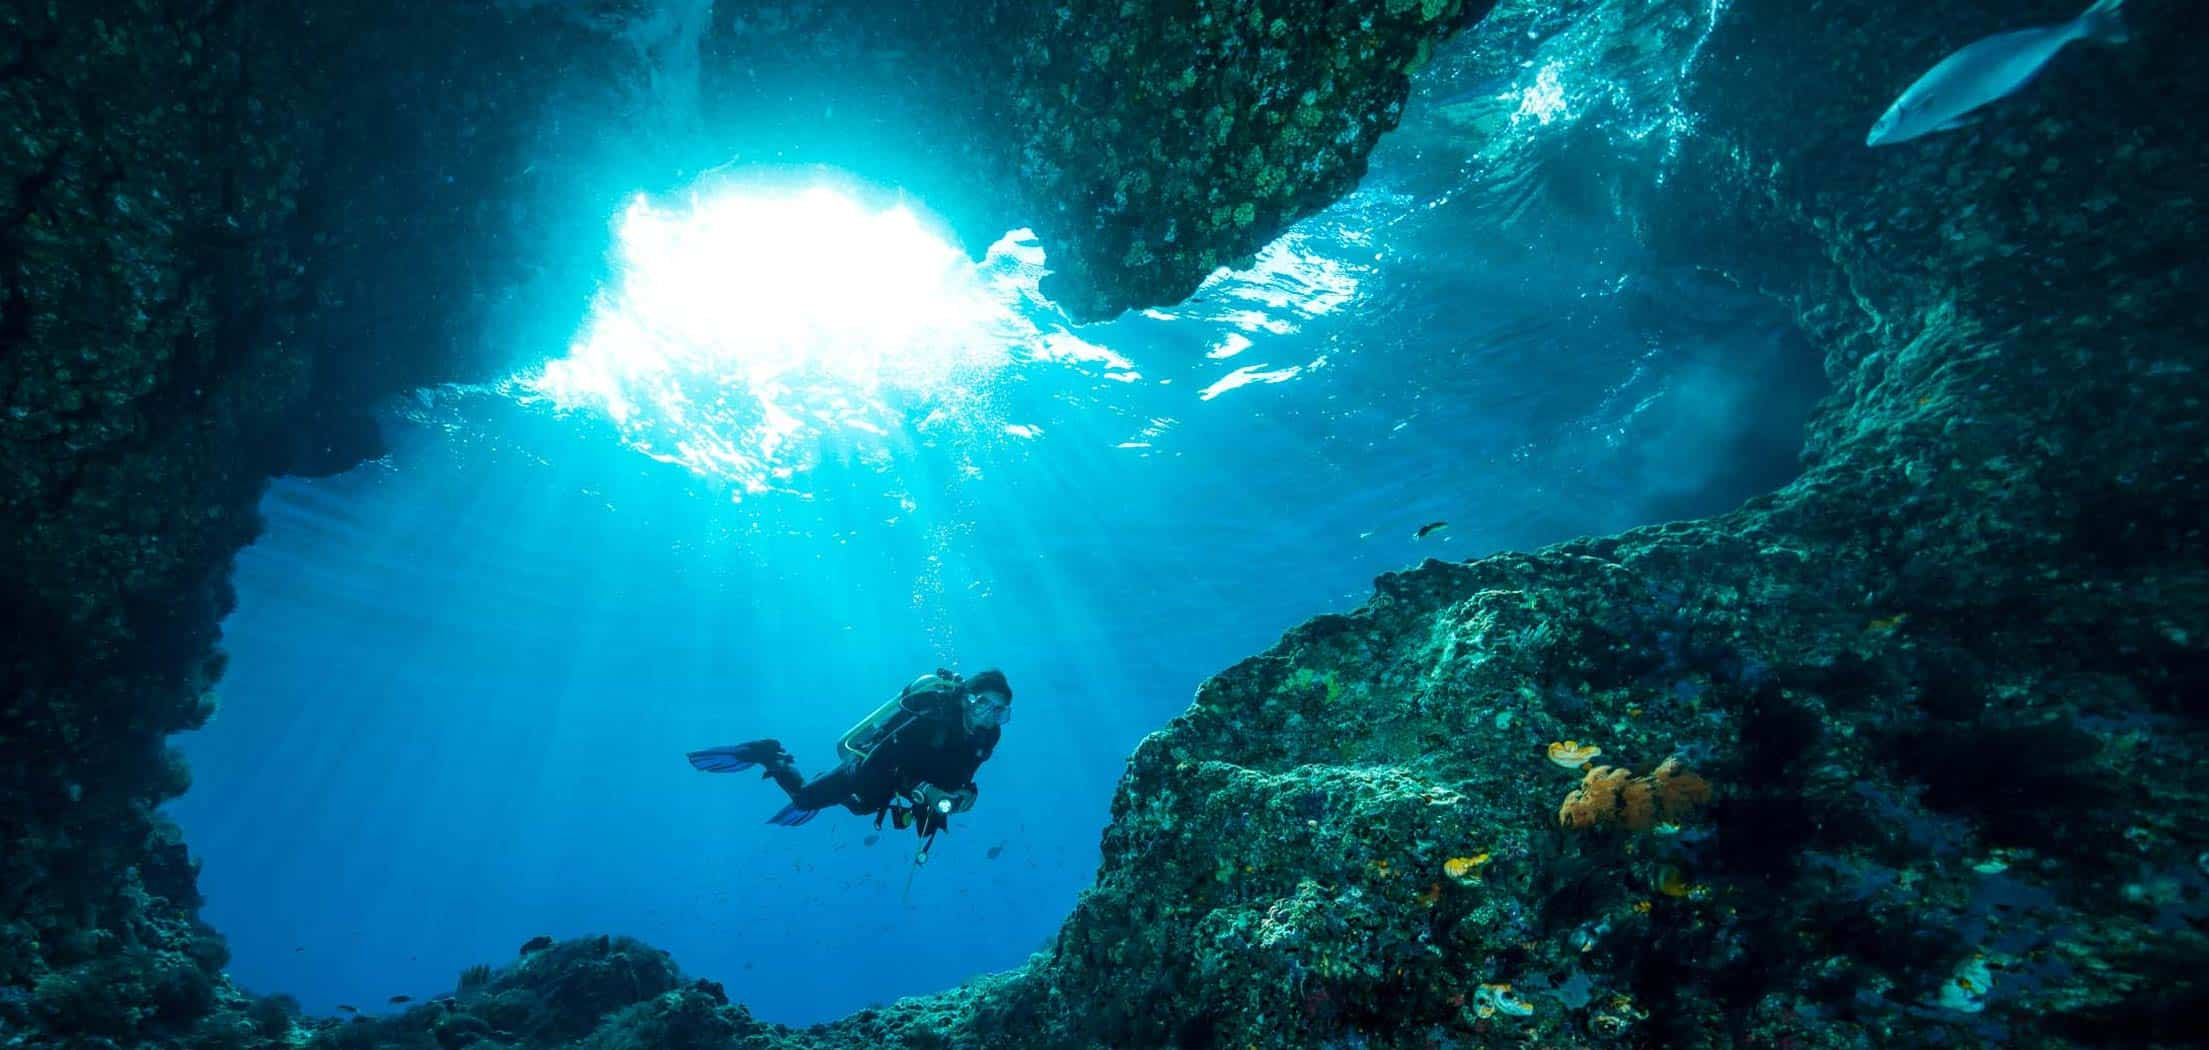 A scuba diver woman swimming in an underwater cave